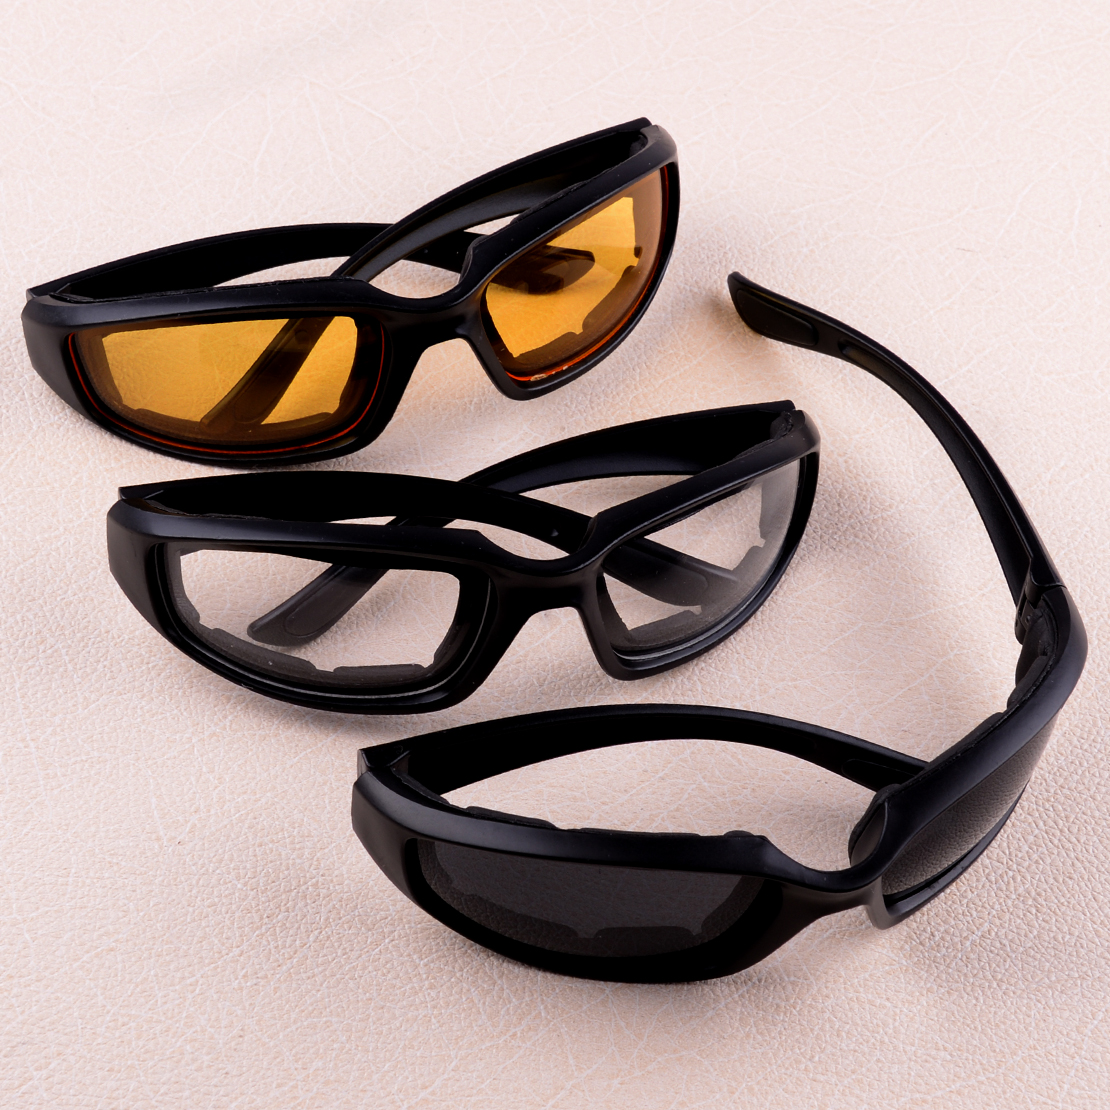 3 Pair Motorcycle Sports Biker Riding Glasses Padded Wind Resistant Sunglasses